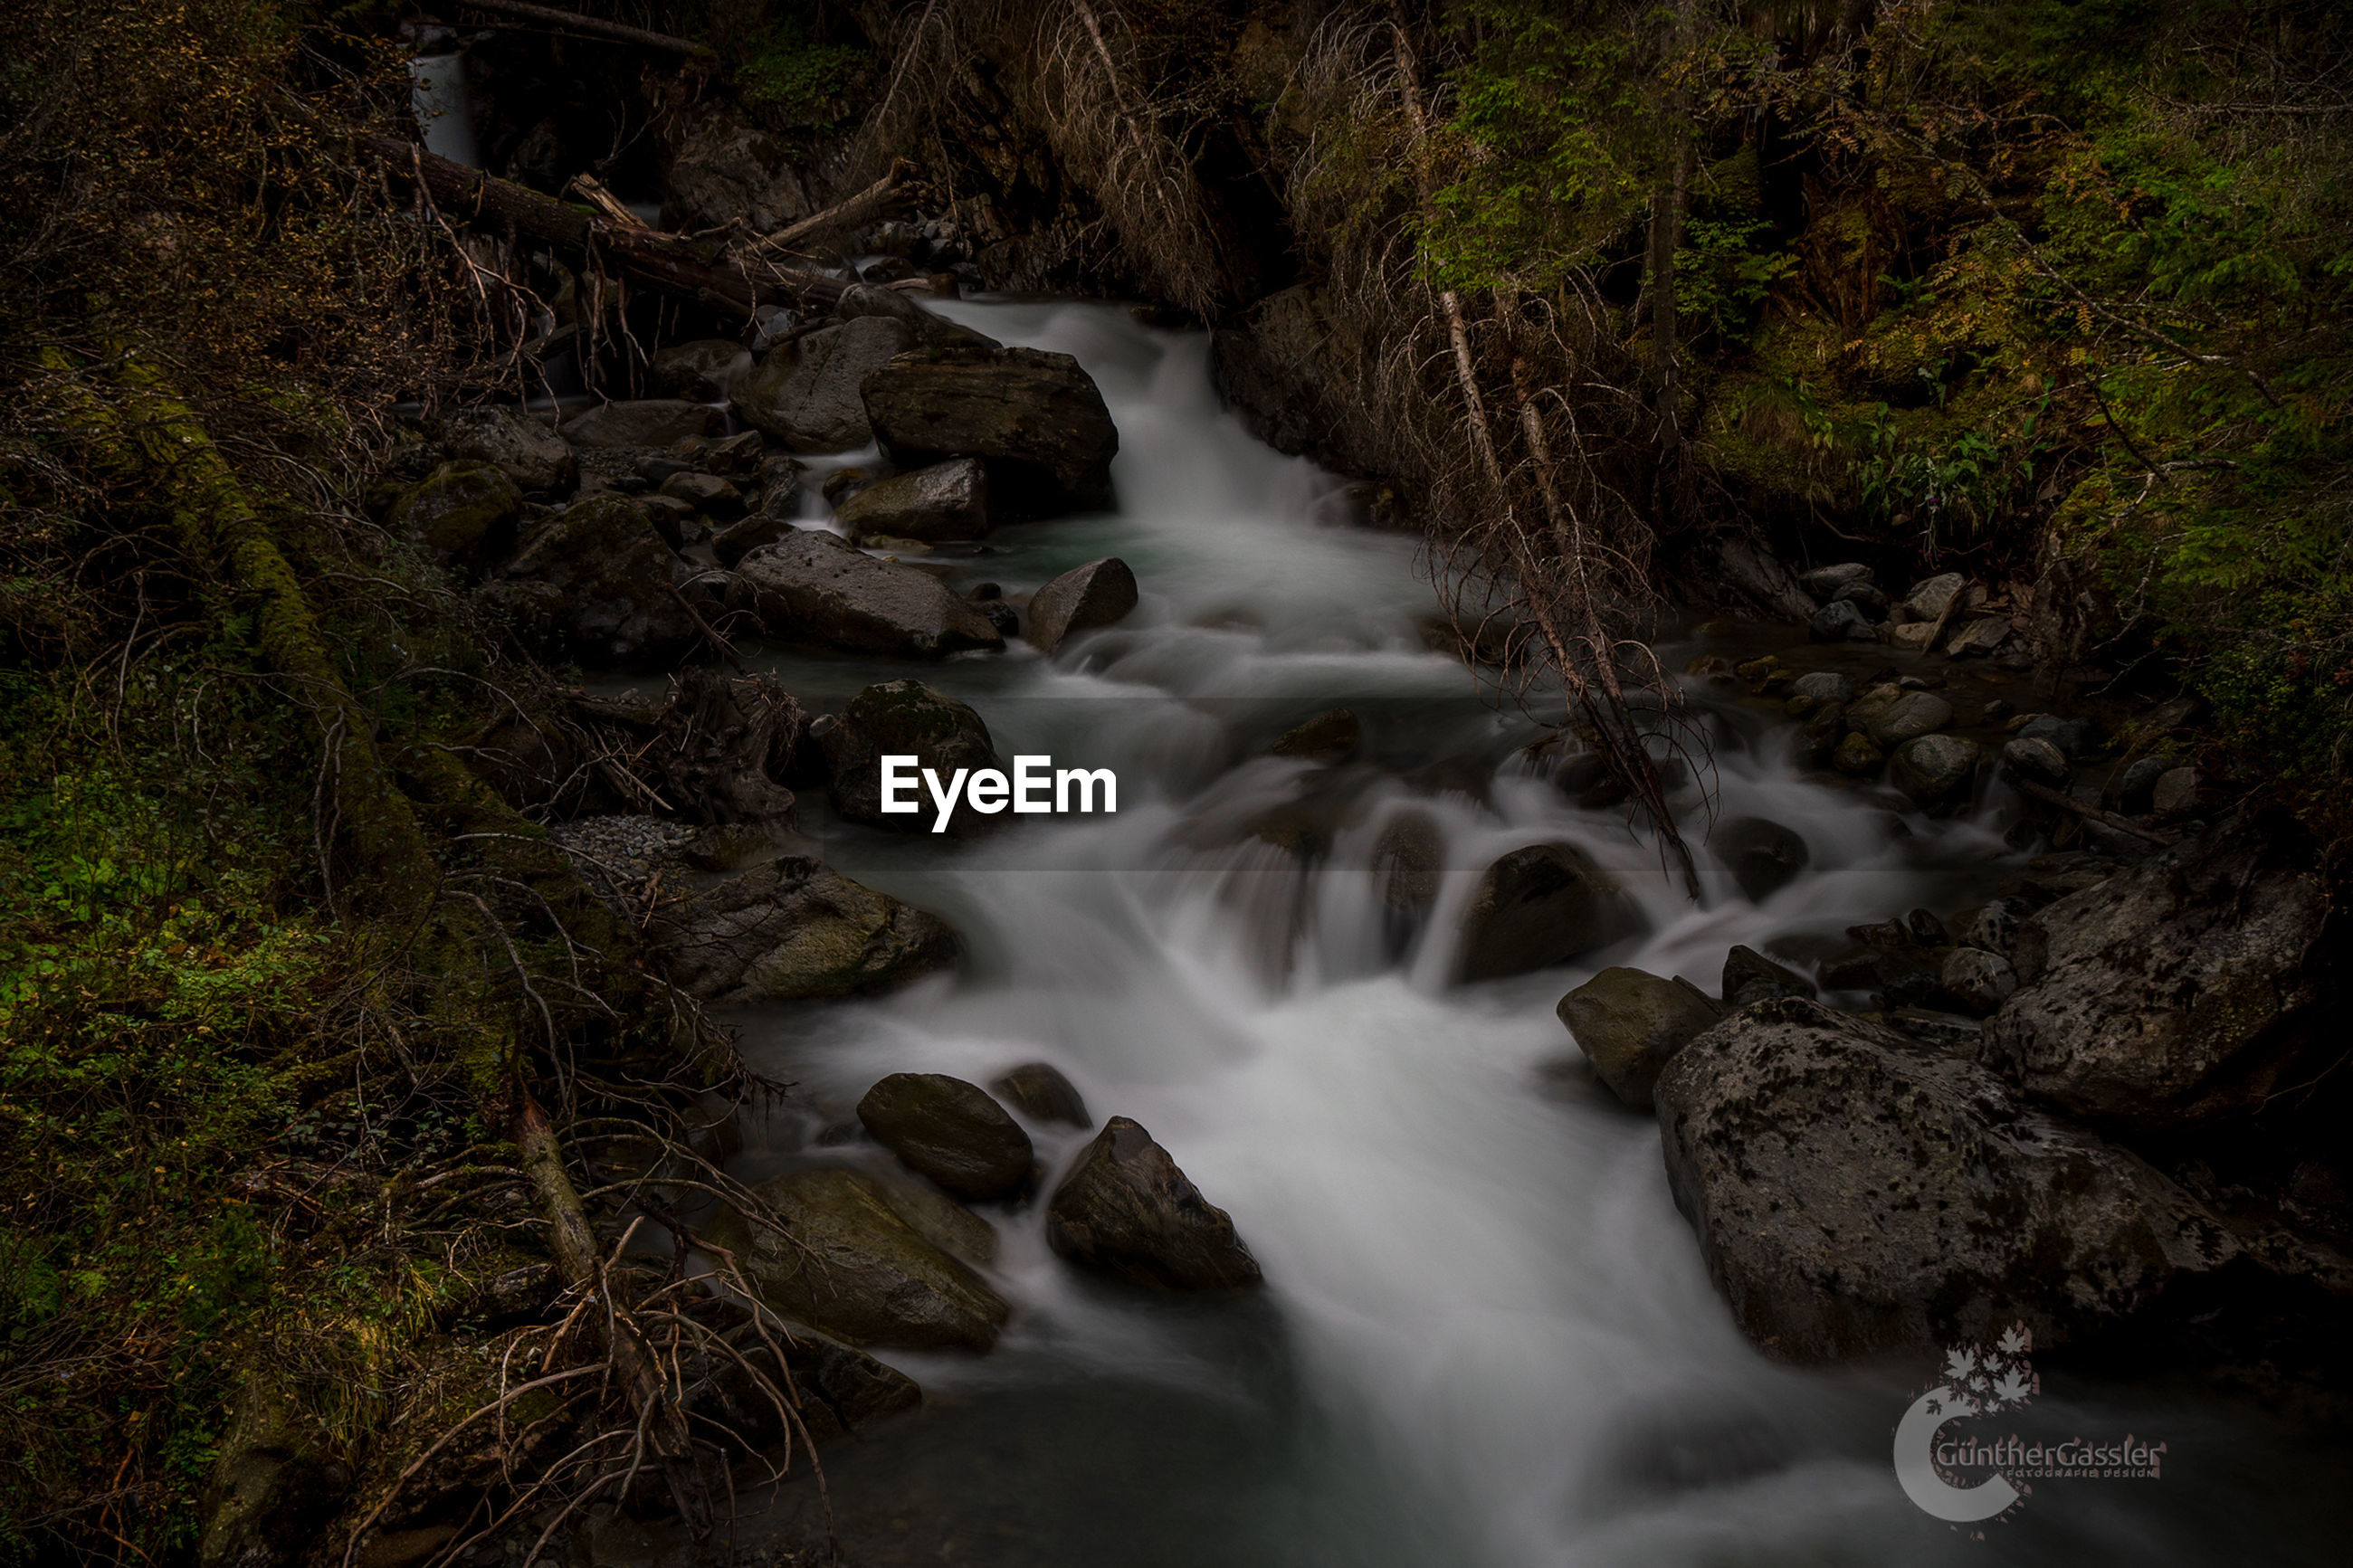 motion, long exposure, water, rock, blurred motion, land, beauty in nature, rock - object, no people, solid, forest, flowing water, scenics - nature, nature, flowing, tree, day, plant, stream - flowing water, rainforest